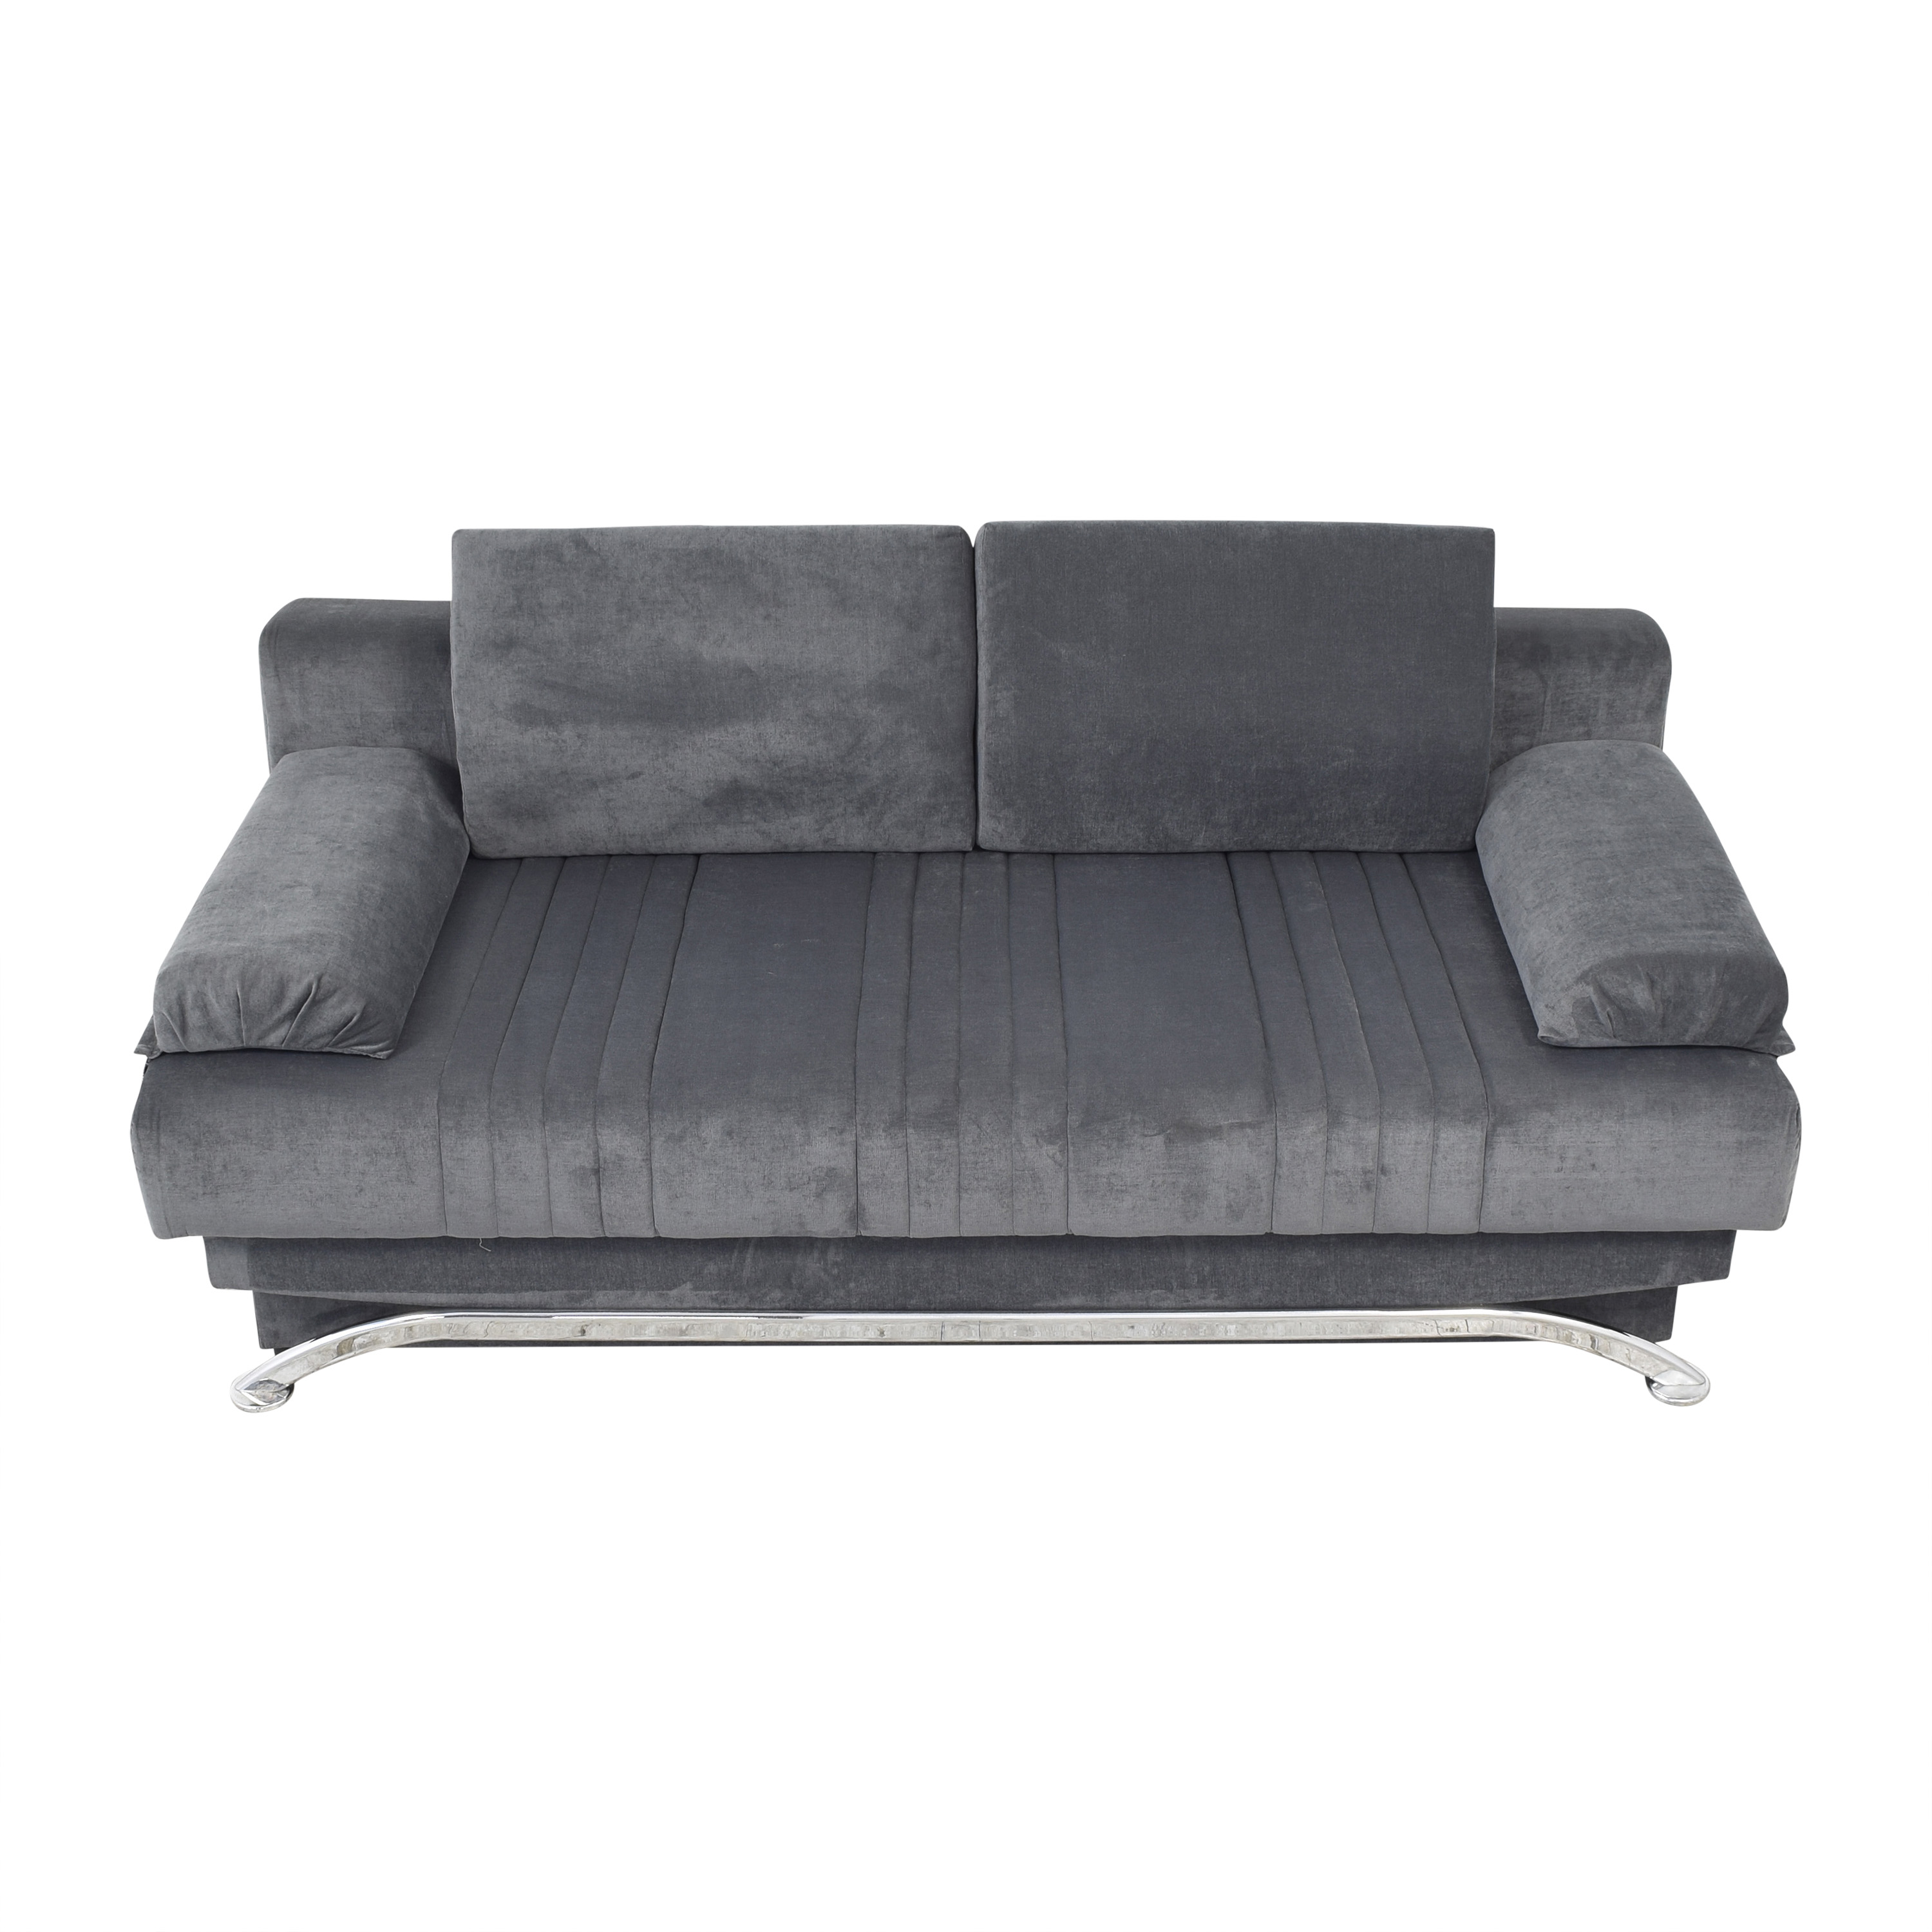 - 53% OFF - Contemporary Sleeper Sofa / Sofas